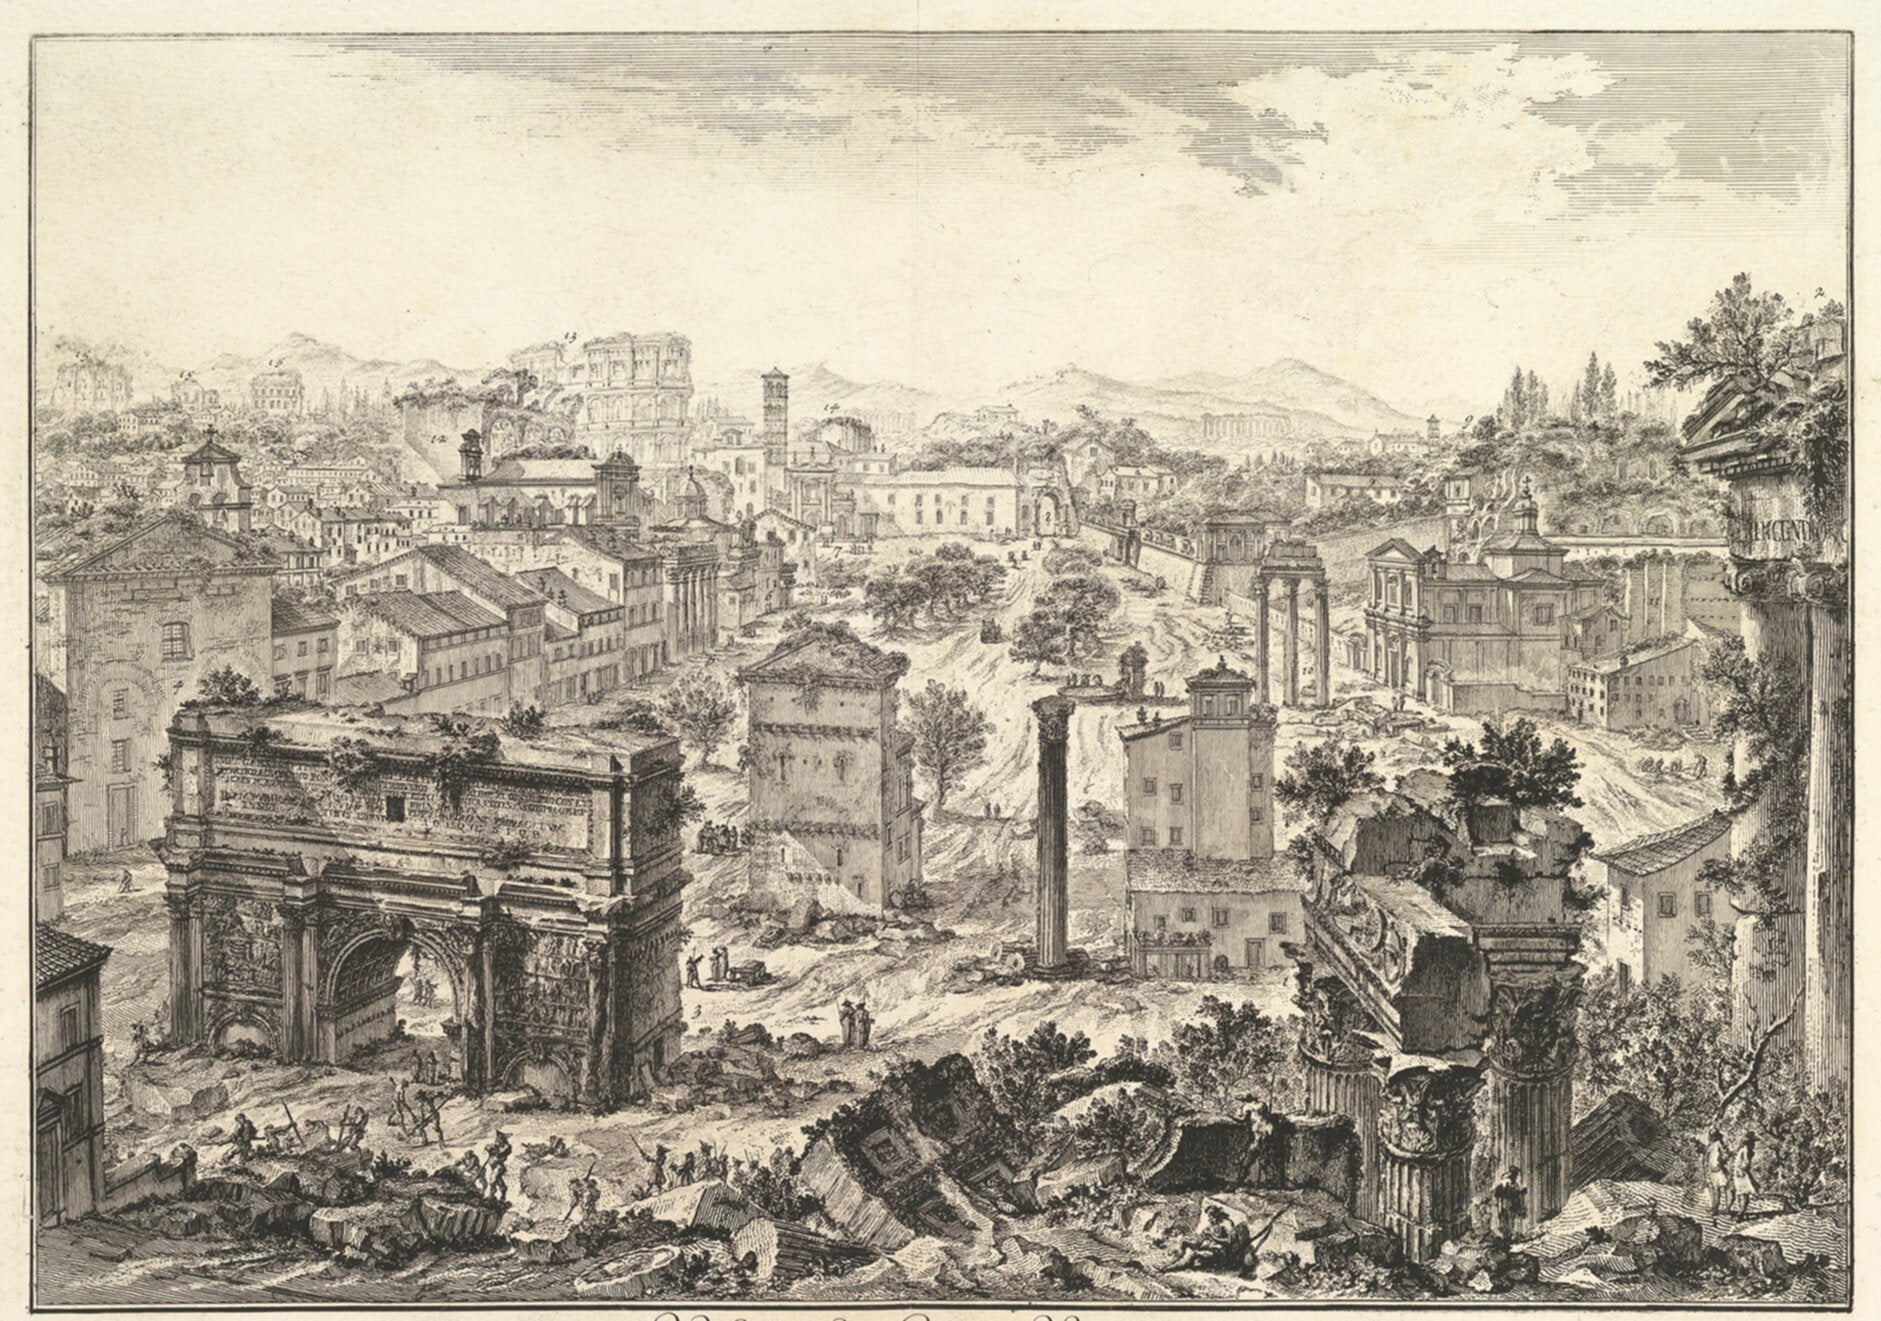 Susanna Clarke's Piranesi is a fantasy of exceptional beauty